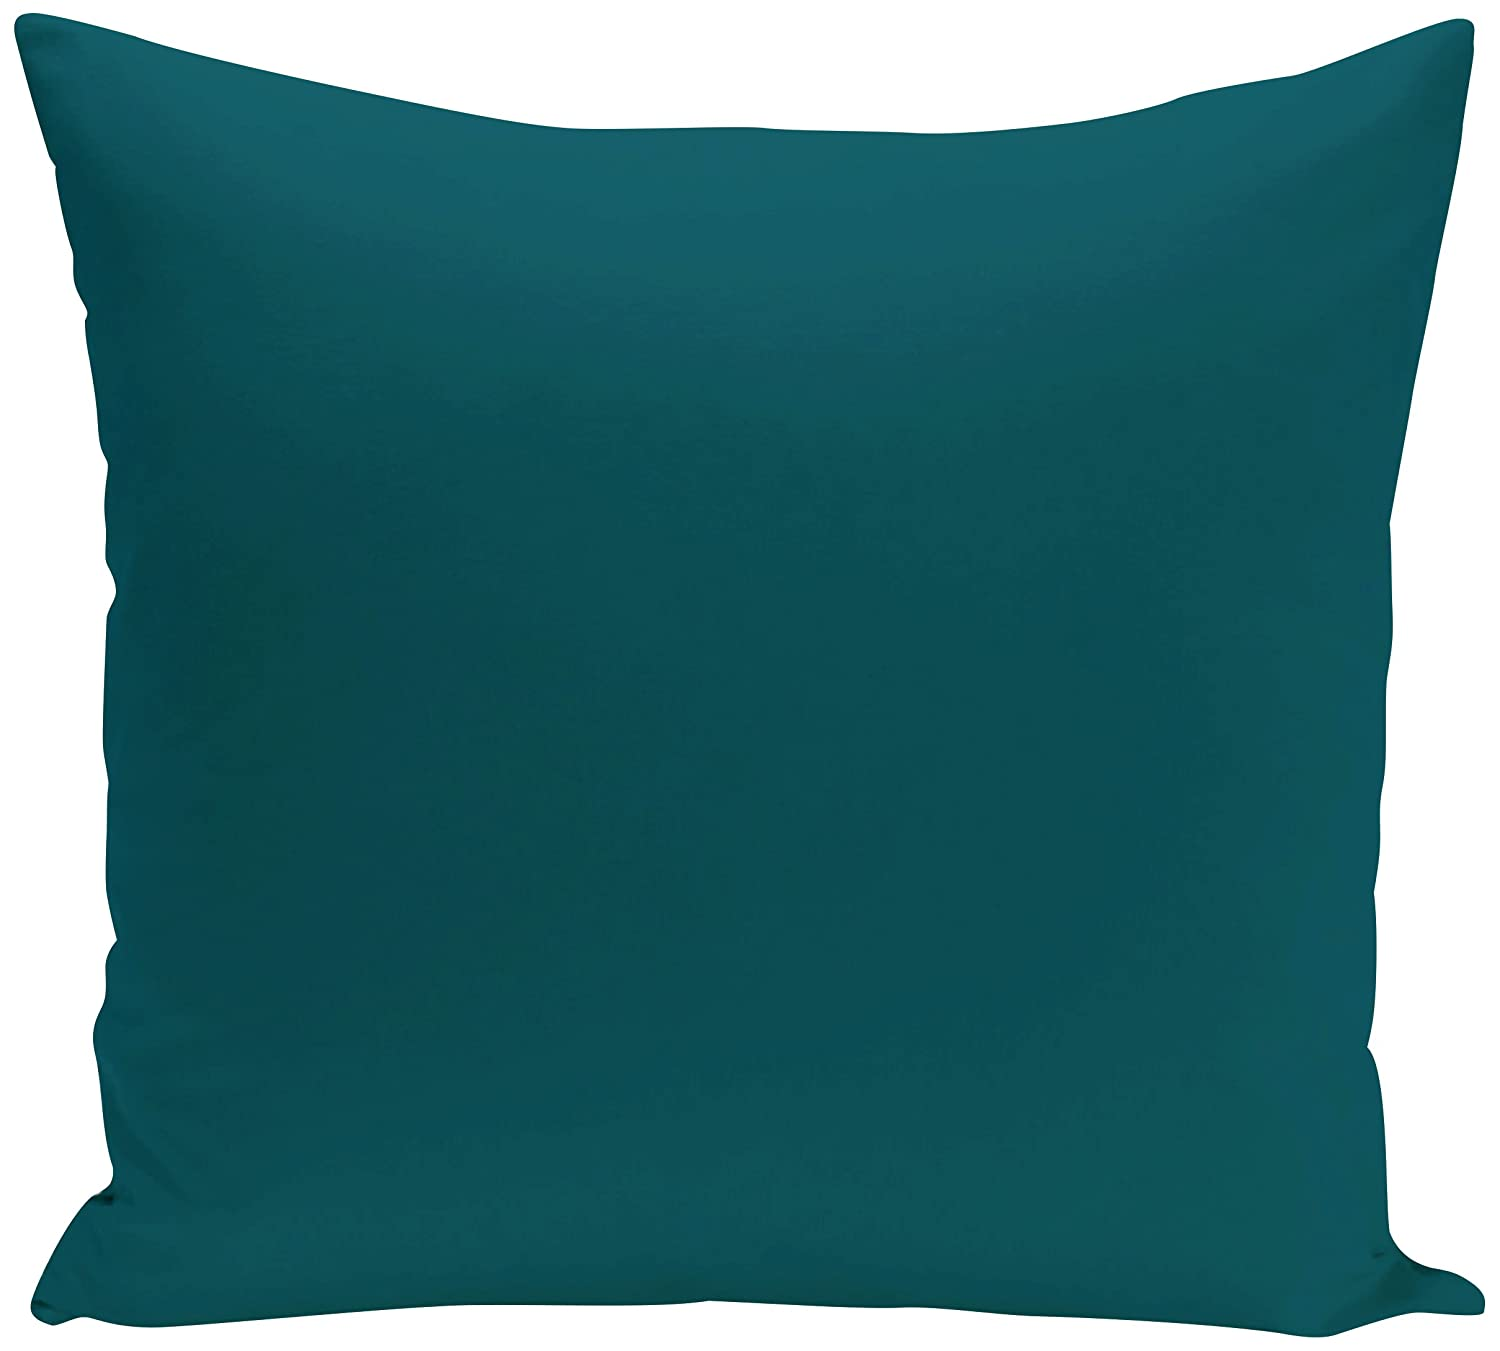 Teal 18x18 Blue E by design PSOBL38-18 18 x 18-inch Solid Print Pillow